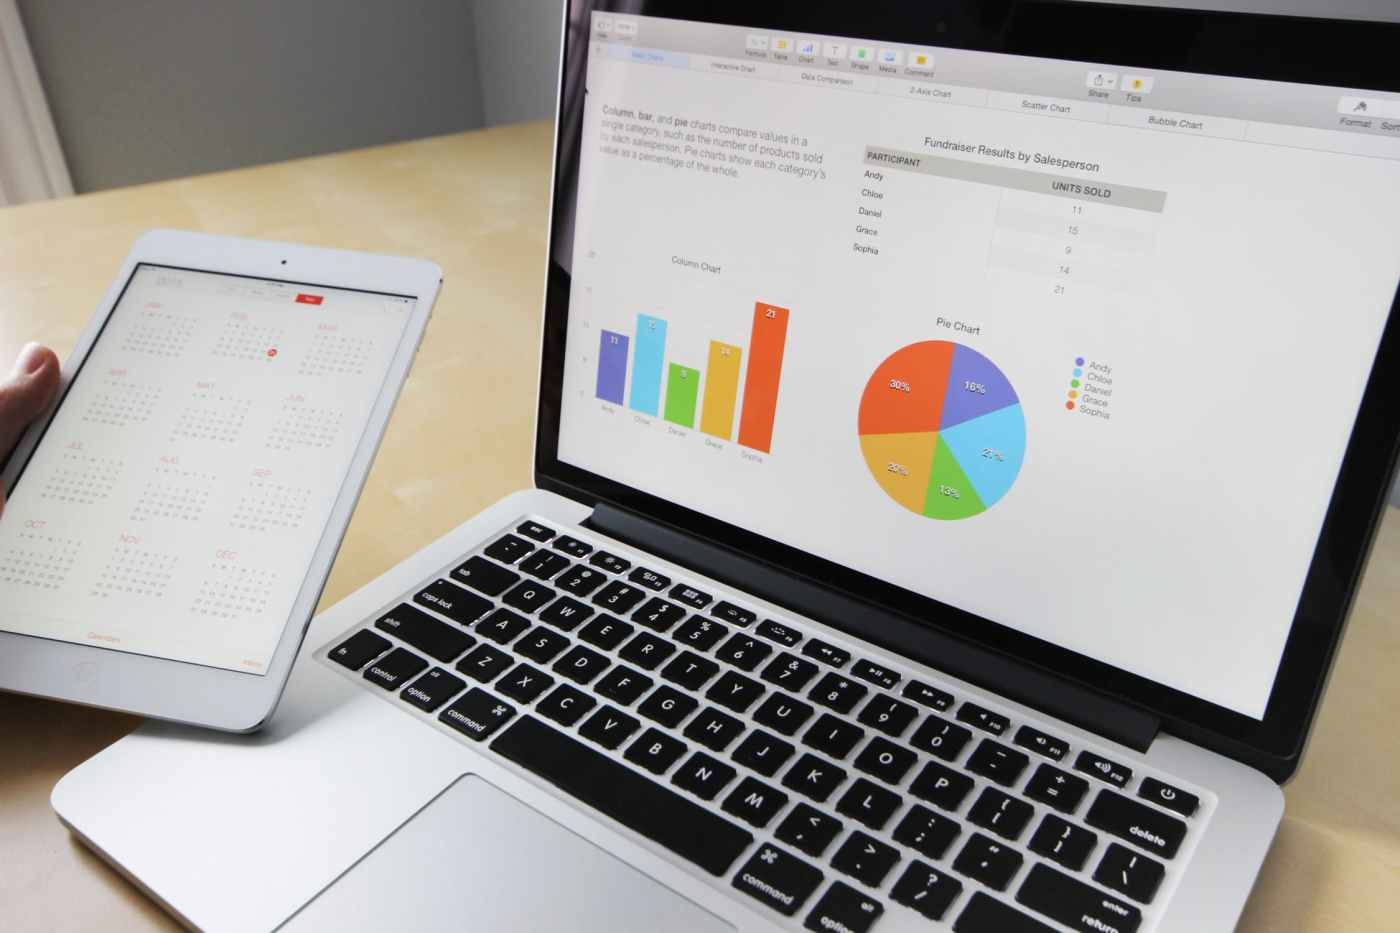 6 Free Digital Marketing Tools to Make Your Business Stand Out